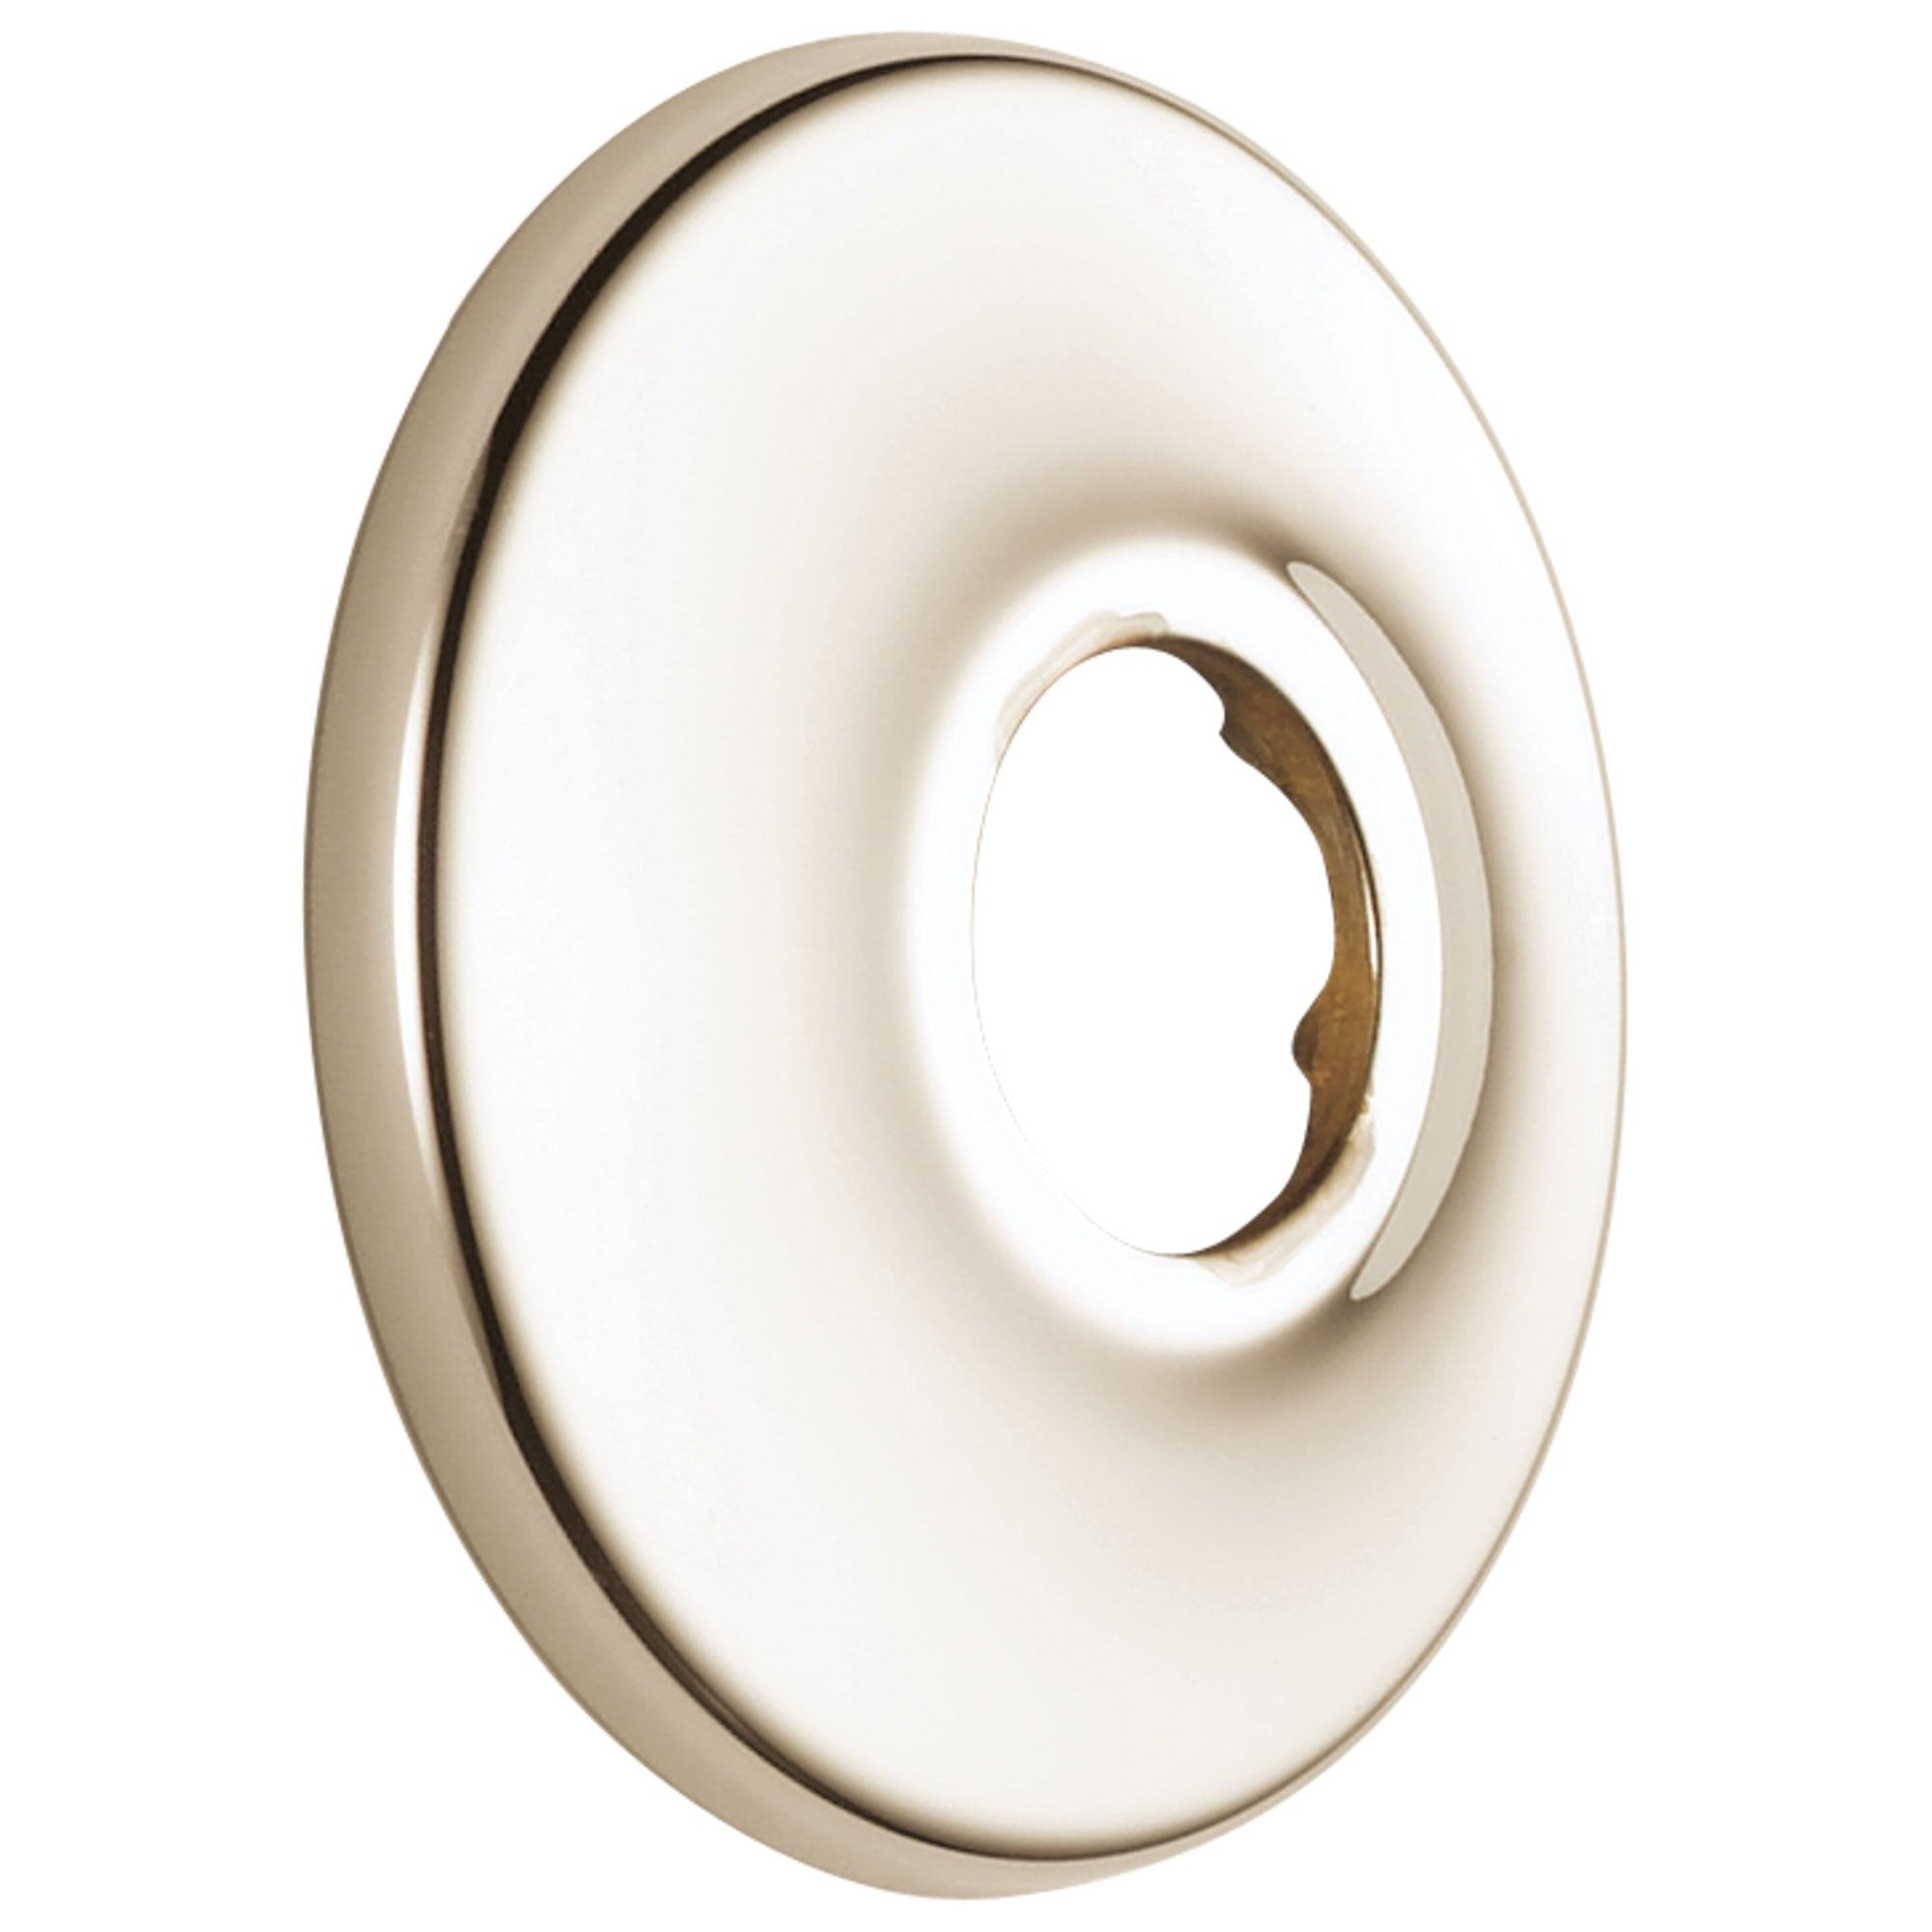 Delta Polished Nickel Finish Shower Flange DRP6025PN